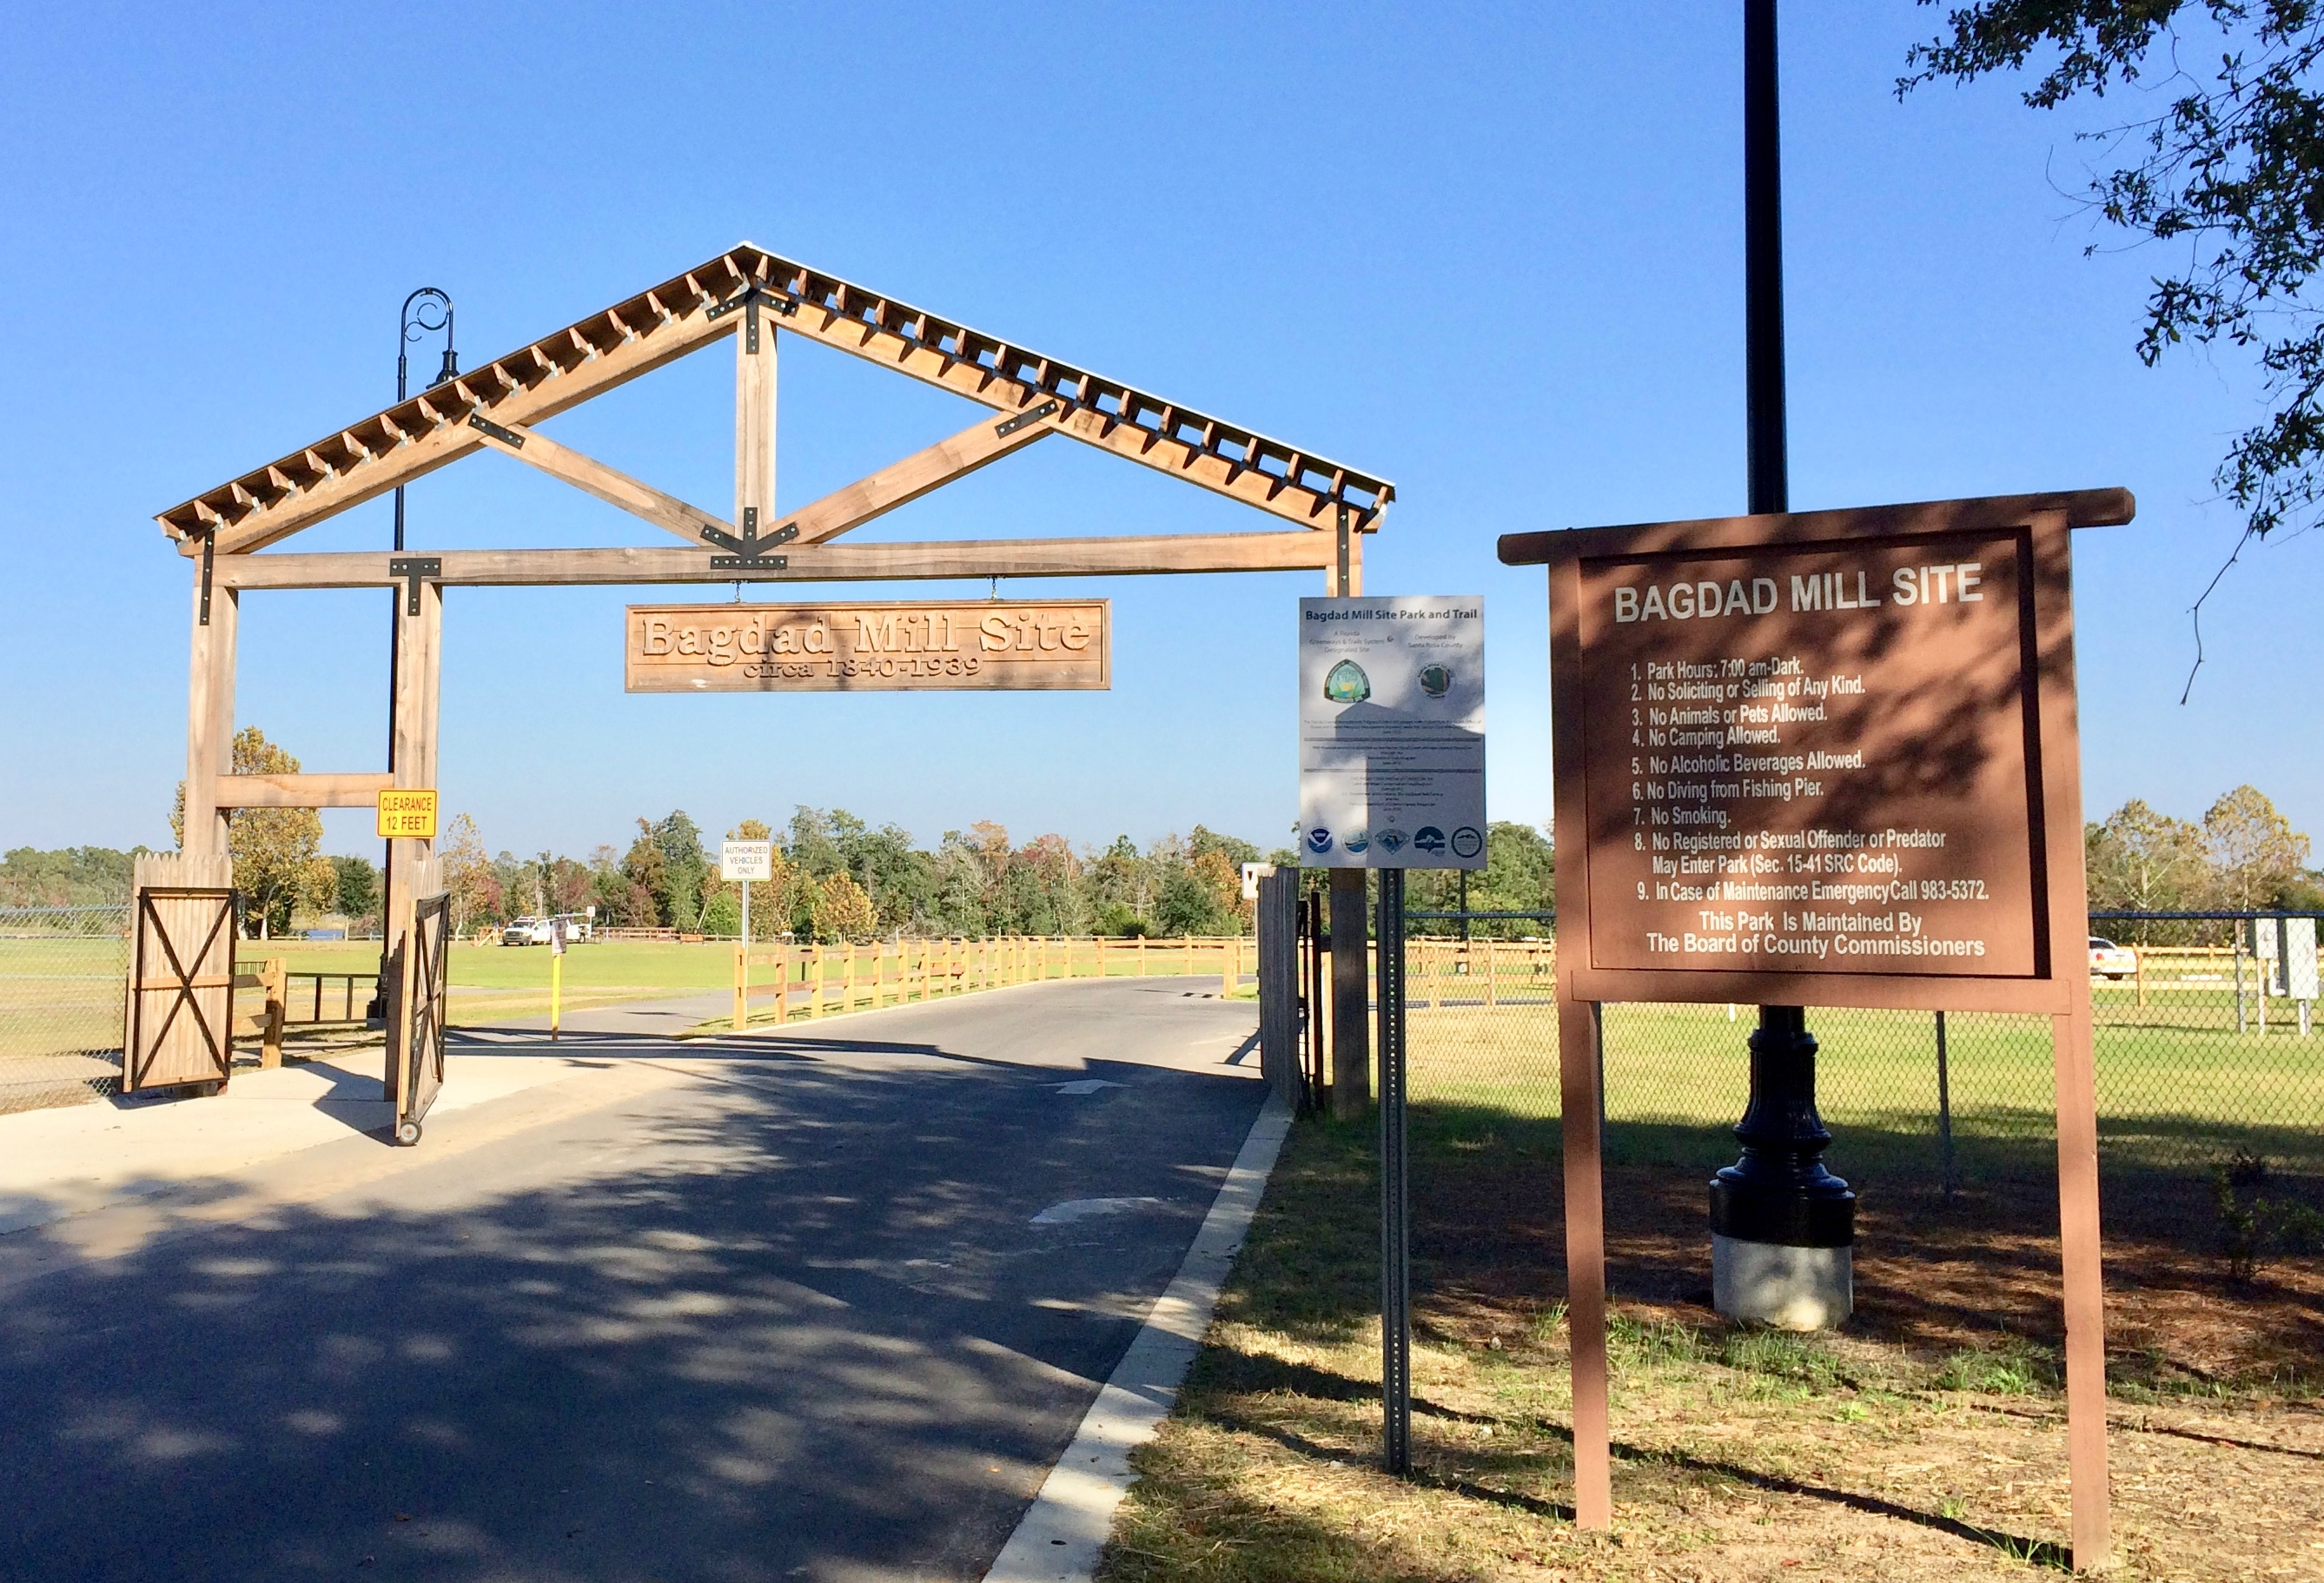 Entrance gate to the Bagdad Mill Site park.